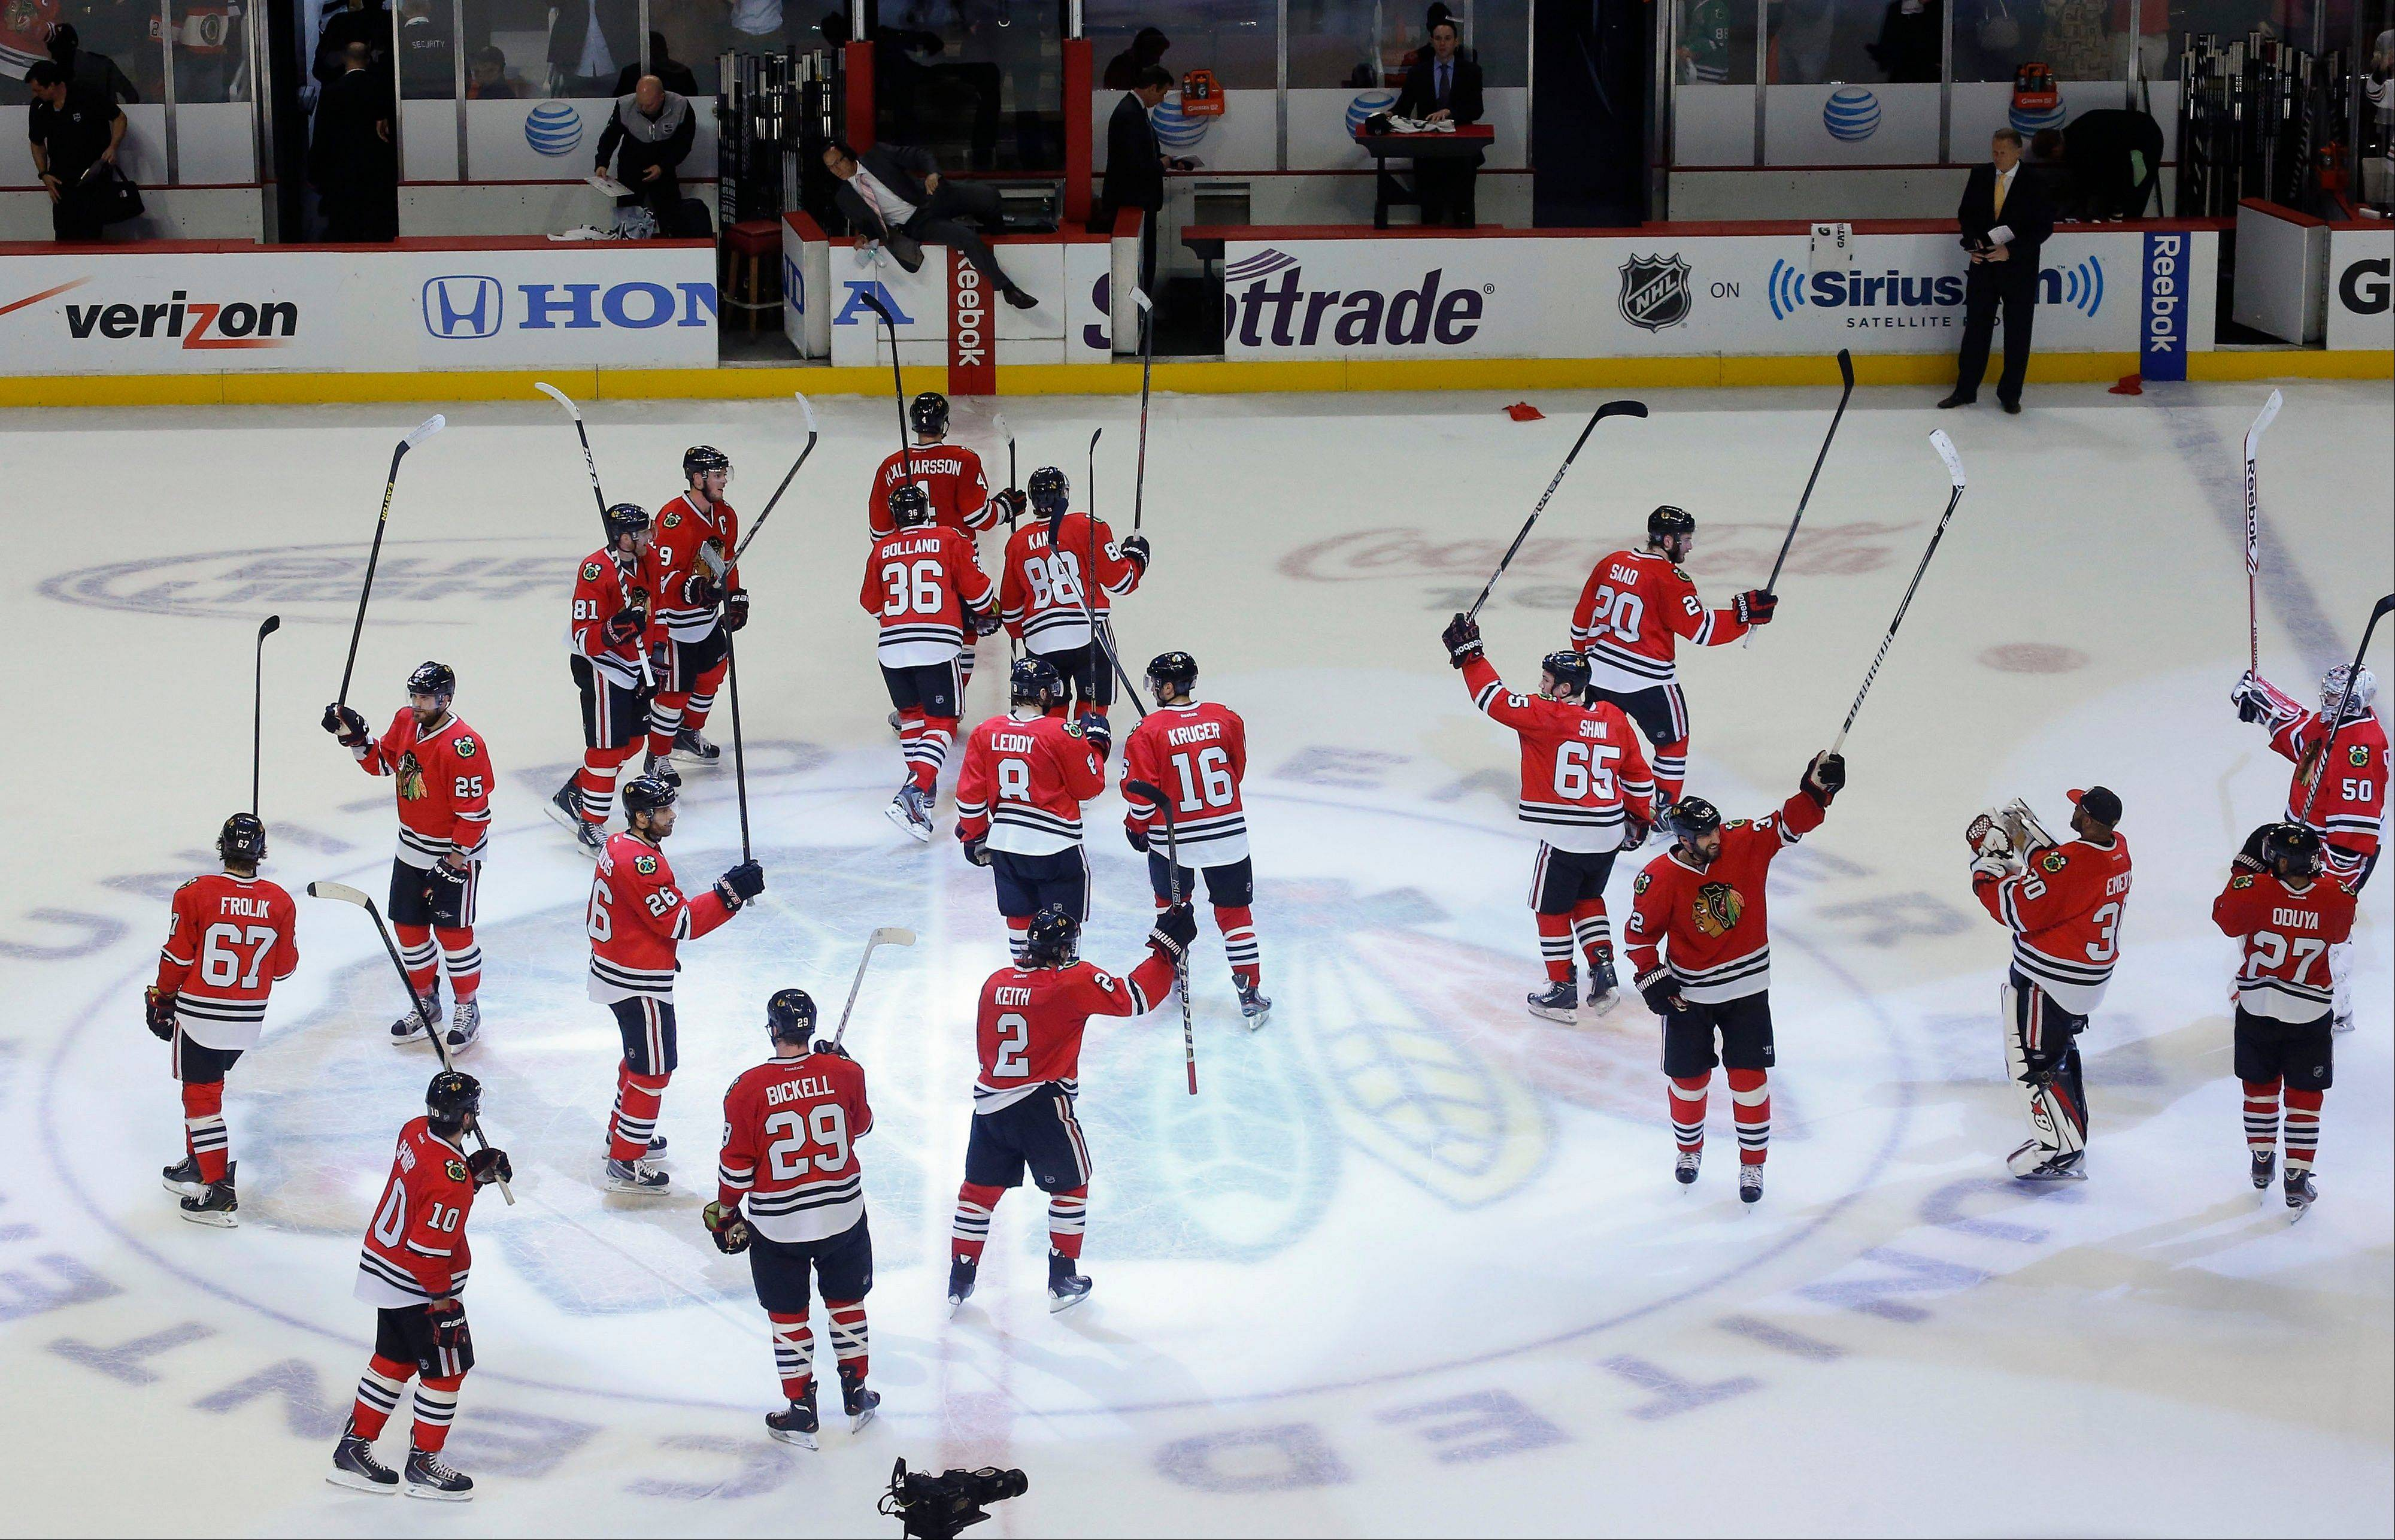 The Chicago Blackhawks celebrate after beating the Los Angeles Kings 4-2 in Game 2 of the NHL hockey Stanley Cup Western Conference finals Sunday, June 2, 2013 in Chicago.